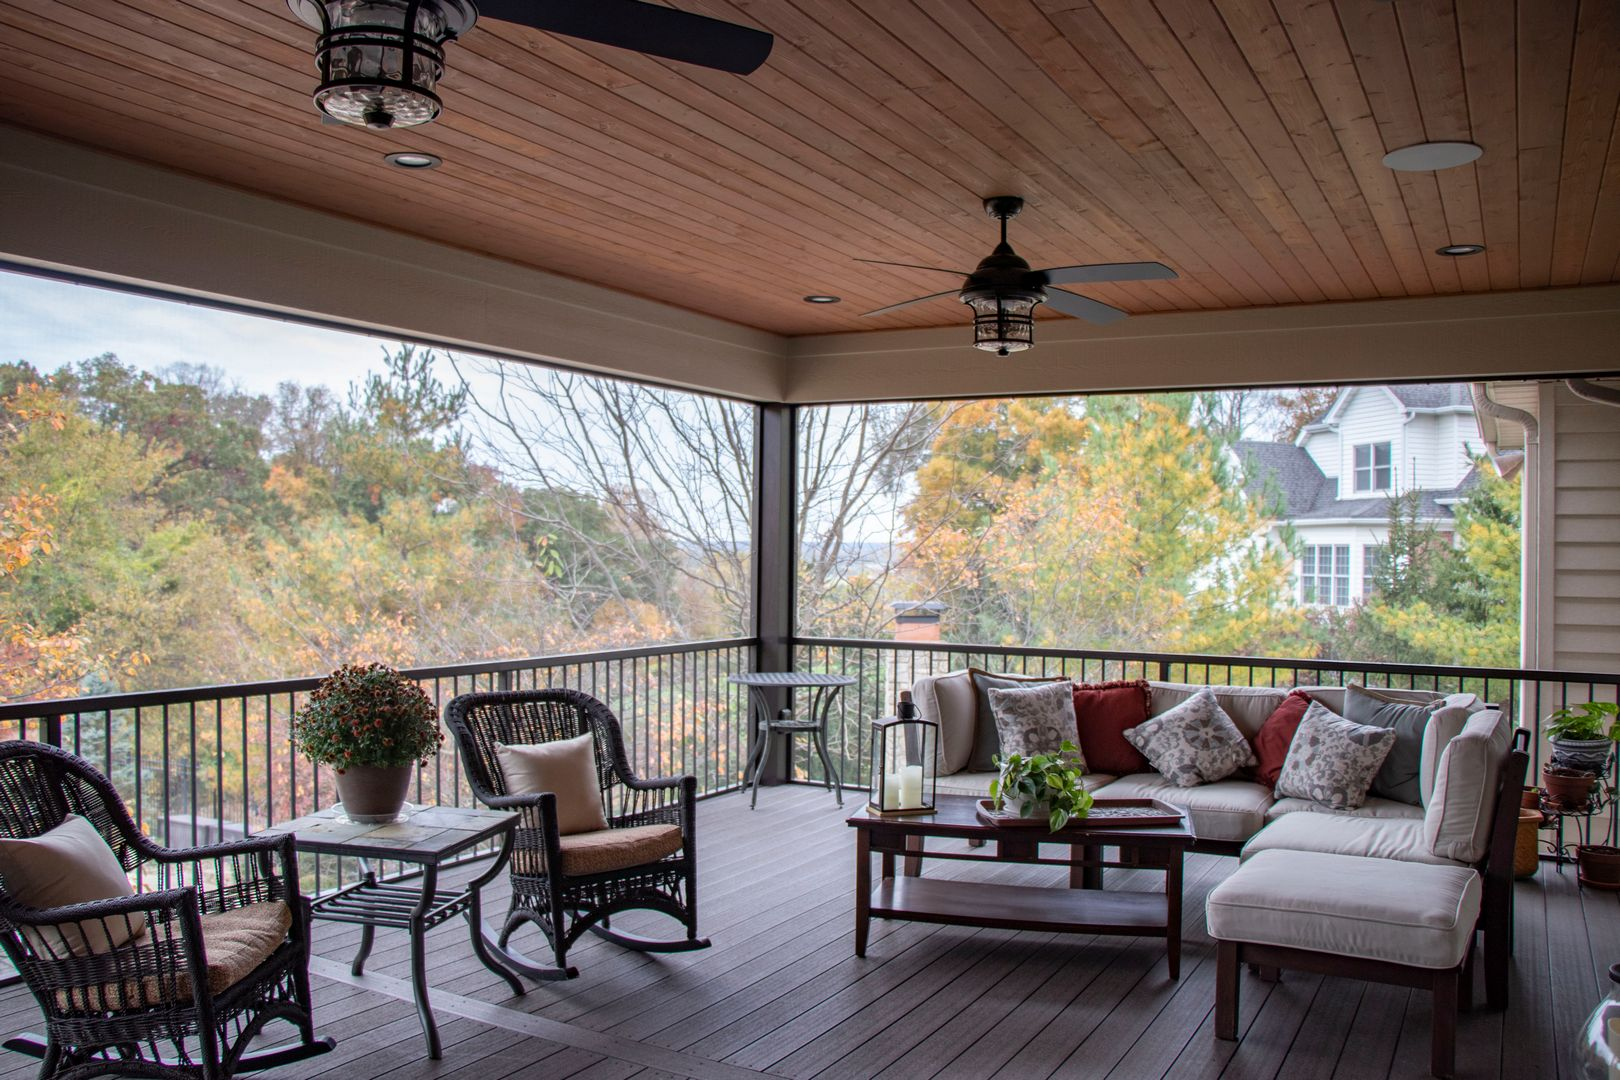 The interior of an outdoor screen room addition on a composite deck